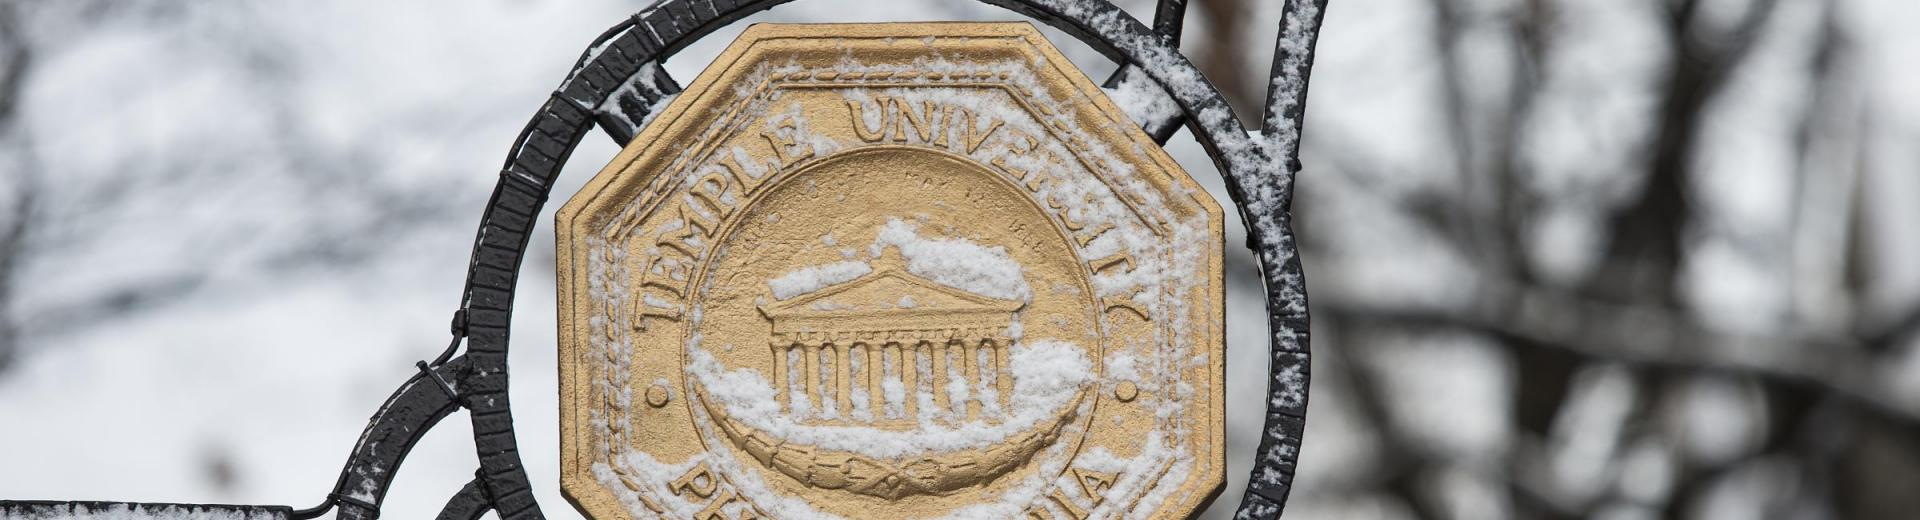 Temple Medallion in Snow